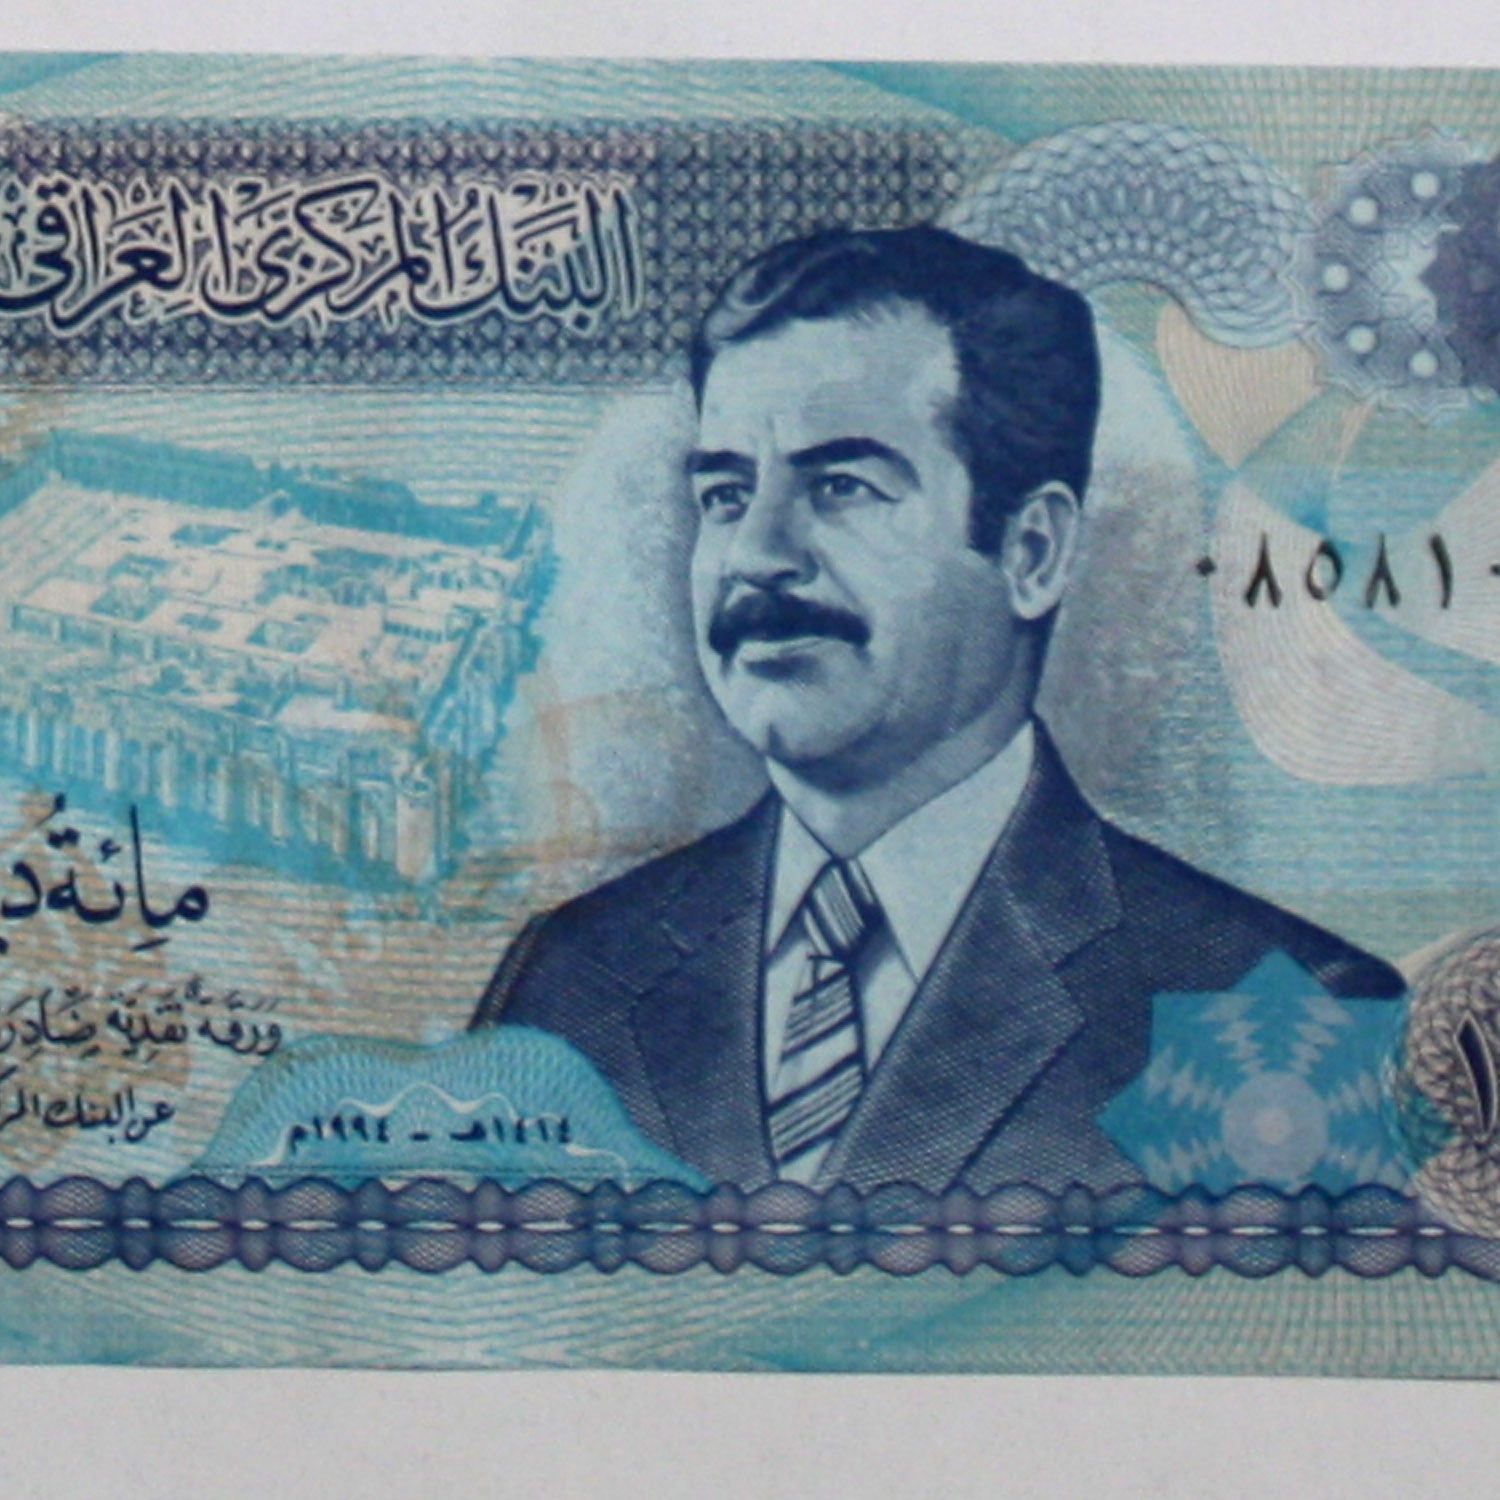 11 billetes de Iraq - Set completo del período Pre y post Sadam